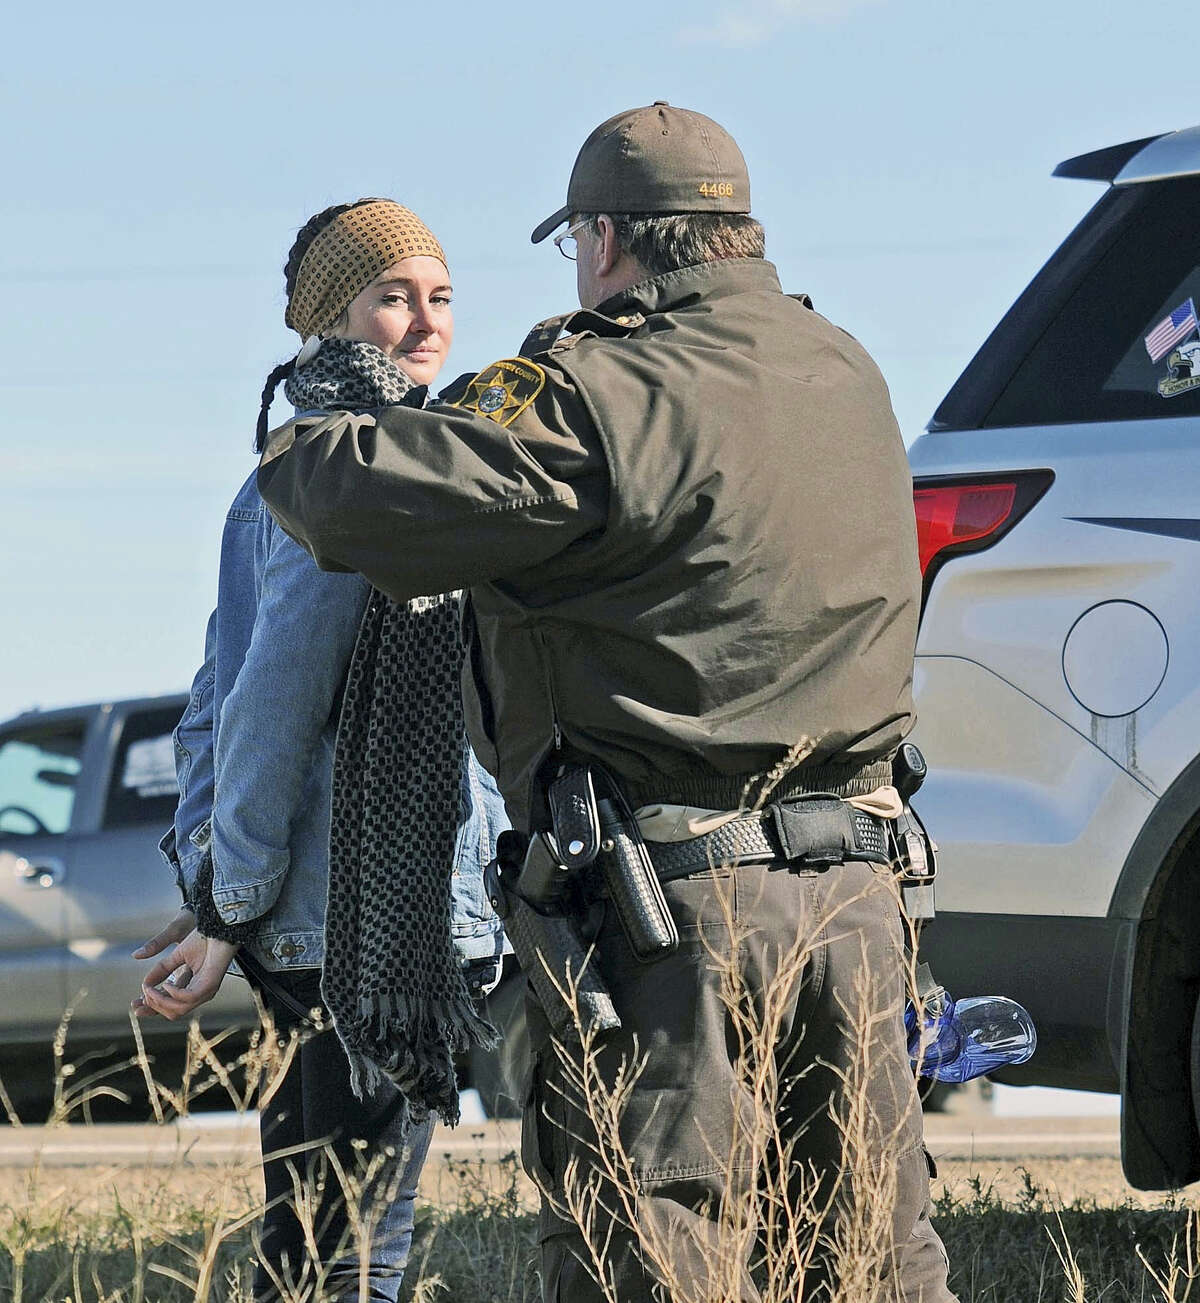 A Morton County Sheriff's deputy officer arrests actress Shailene Woodley at a protest against the Dakota Access Pipeline near St. Anthony, N.D. on Oct. 10, 2016. The U.S. Army Corps of Engineers won't yet authorize construction of the $3.8 billion, four-state Dakota Access oil pipeline on federal land in southern North Dakota, it said Monday, along with reiterating its earlier request that the pipeline company voluntarily stop work on private land in the area.